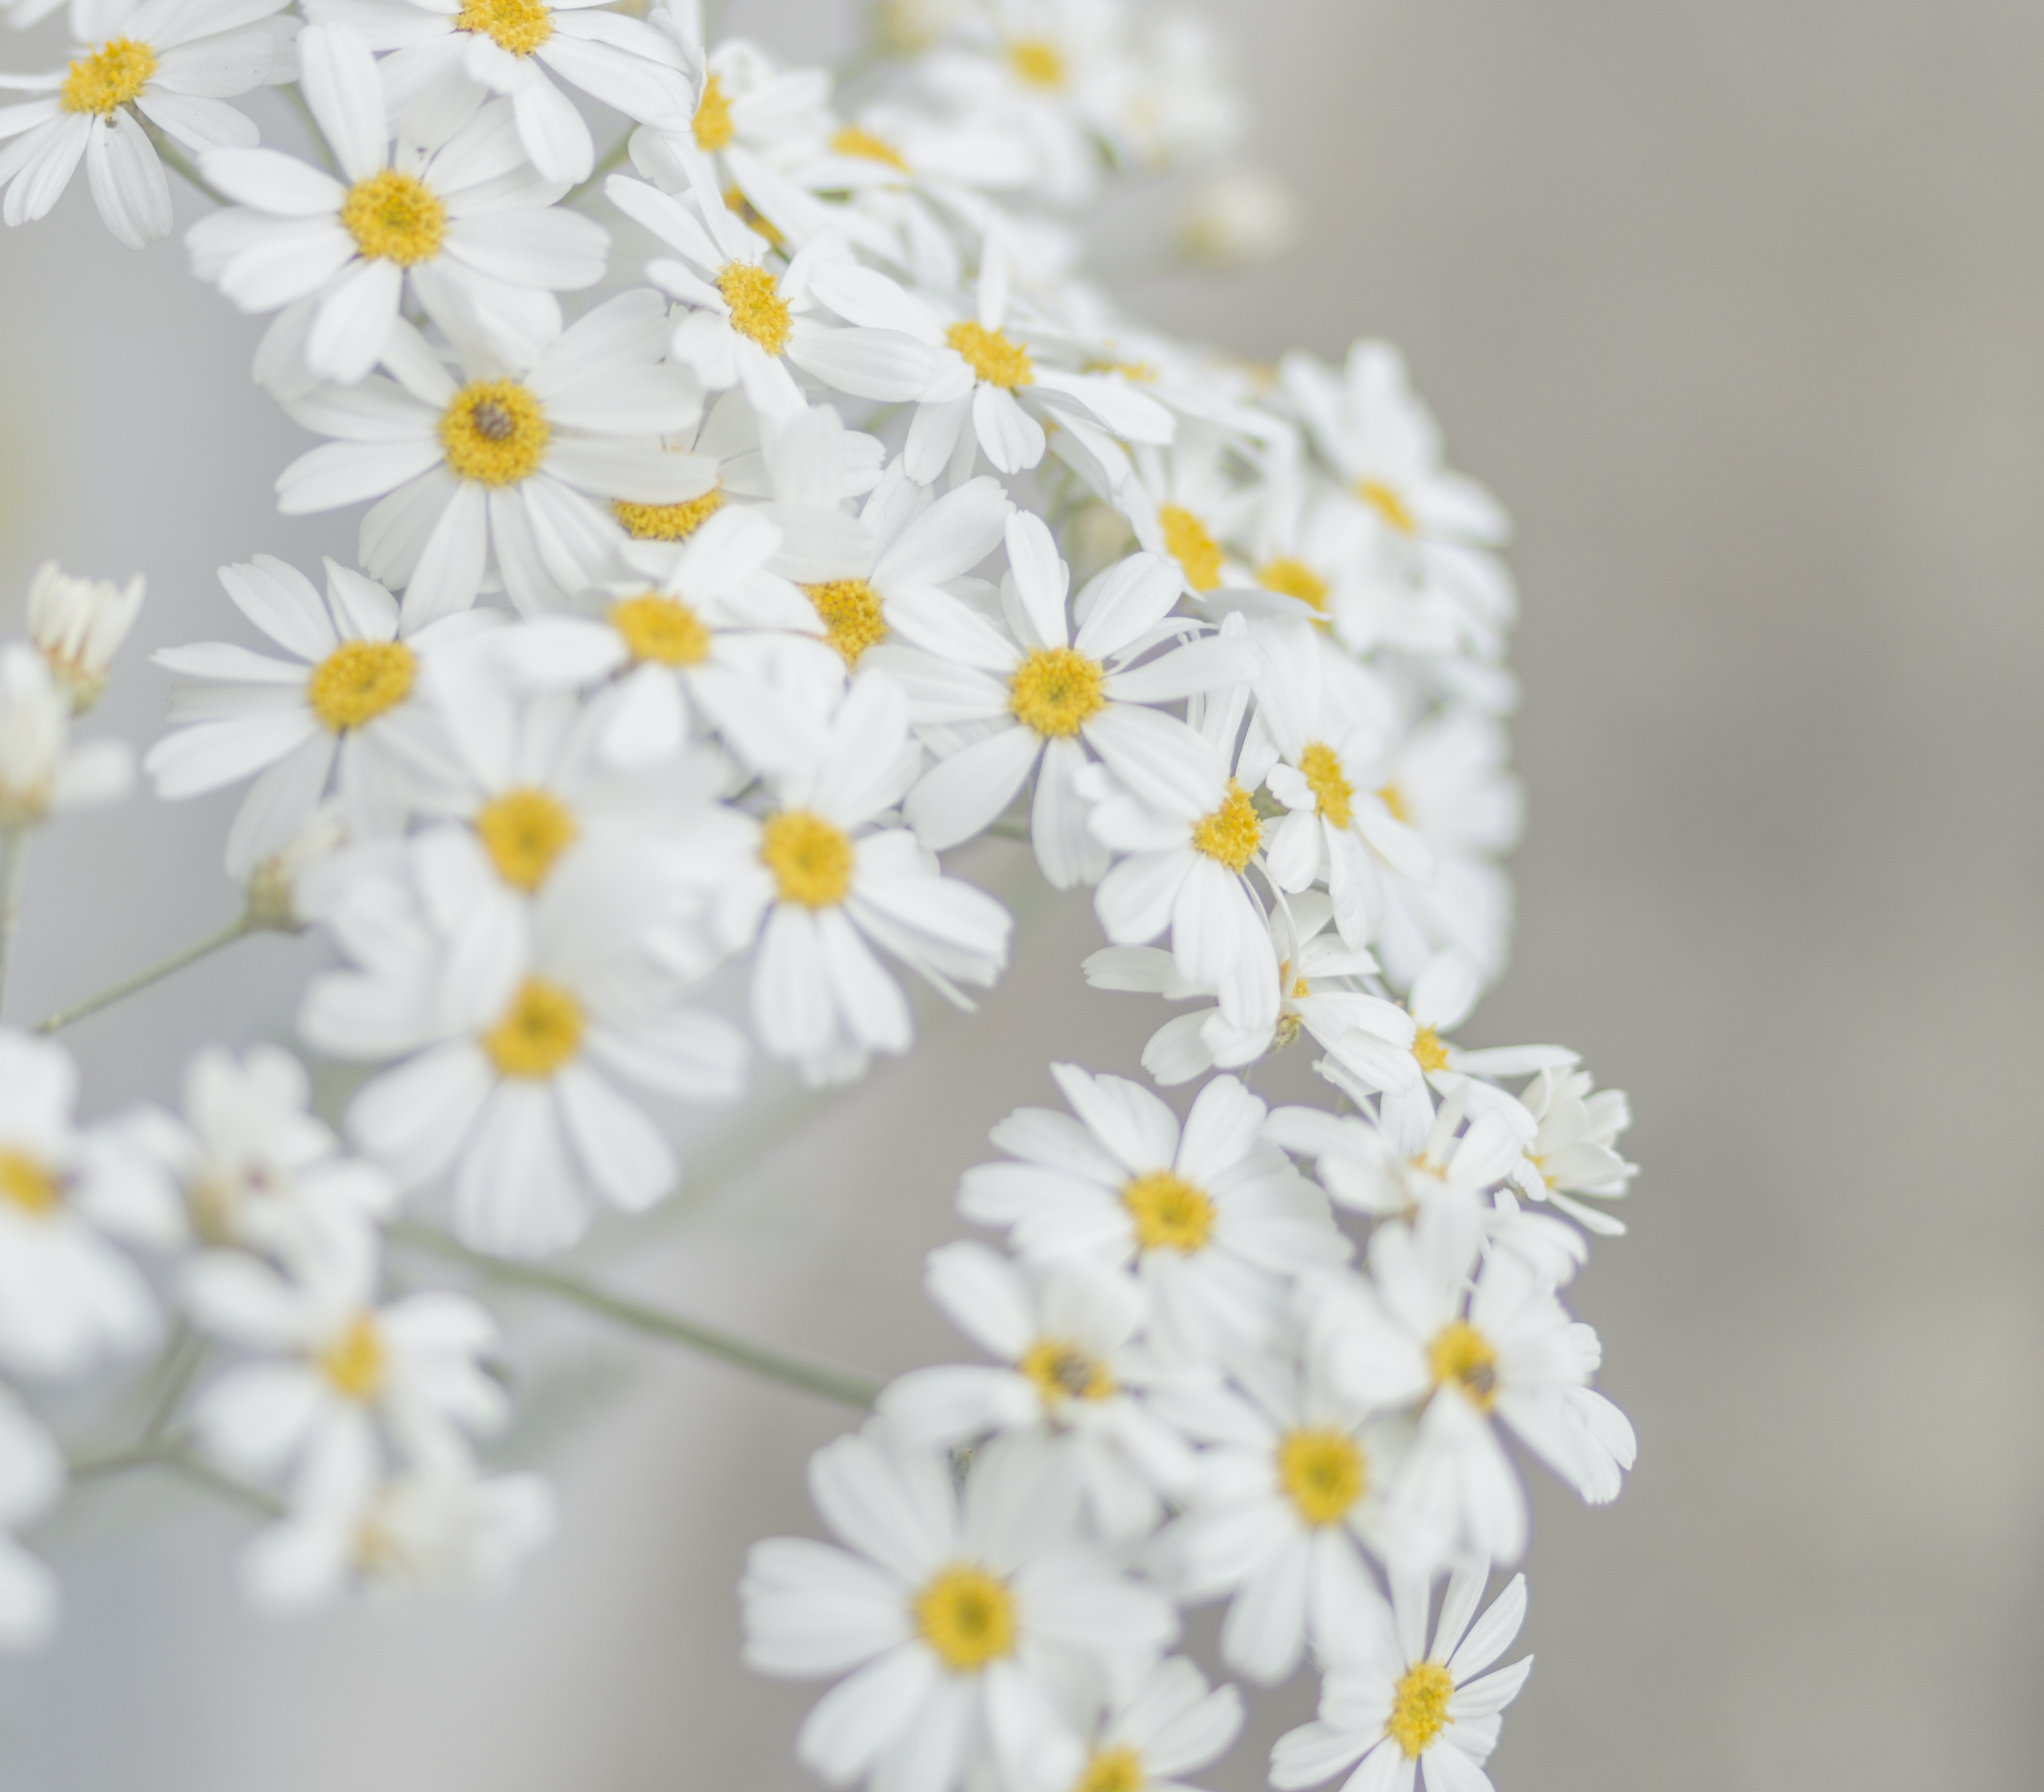 white and yellow petaled flower